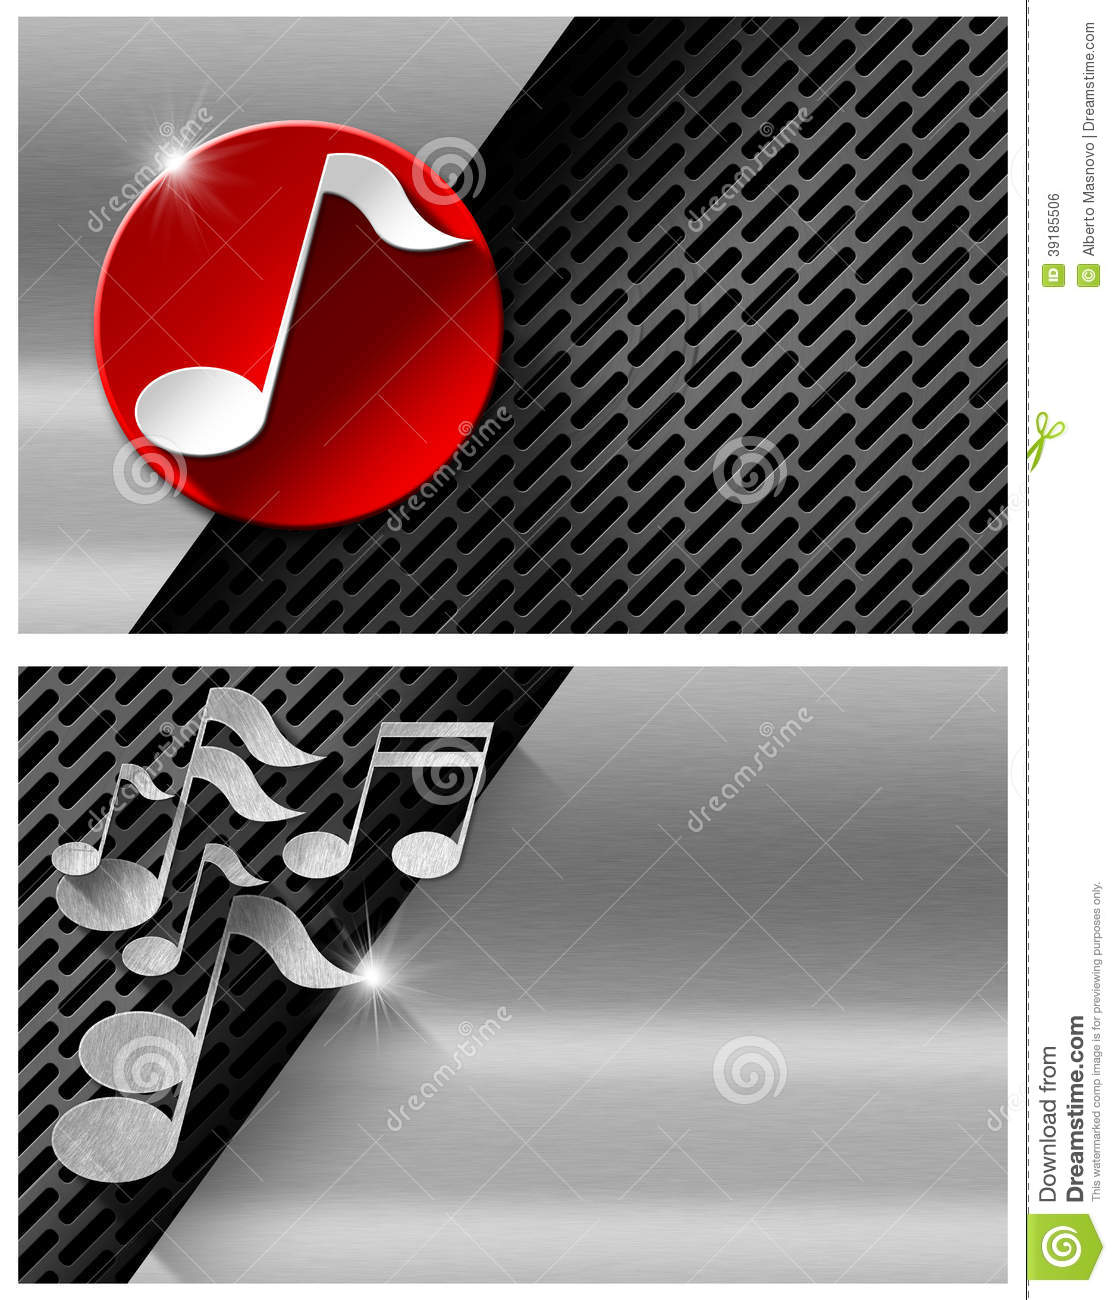 Music metal and red business card stock illustration for Music business card background